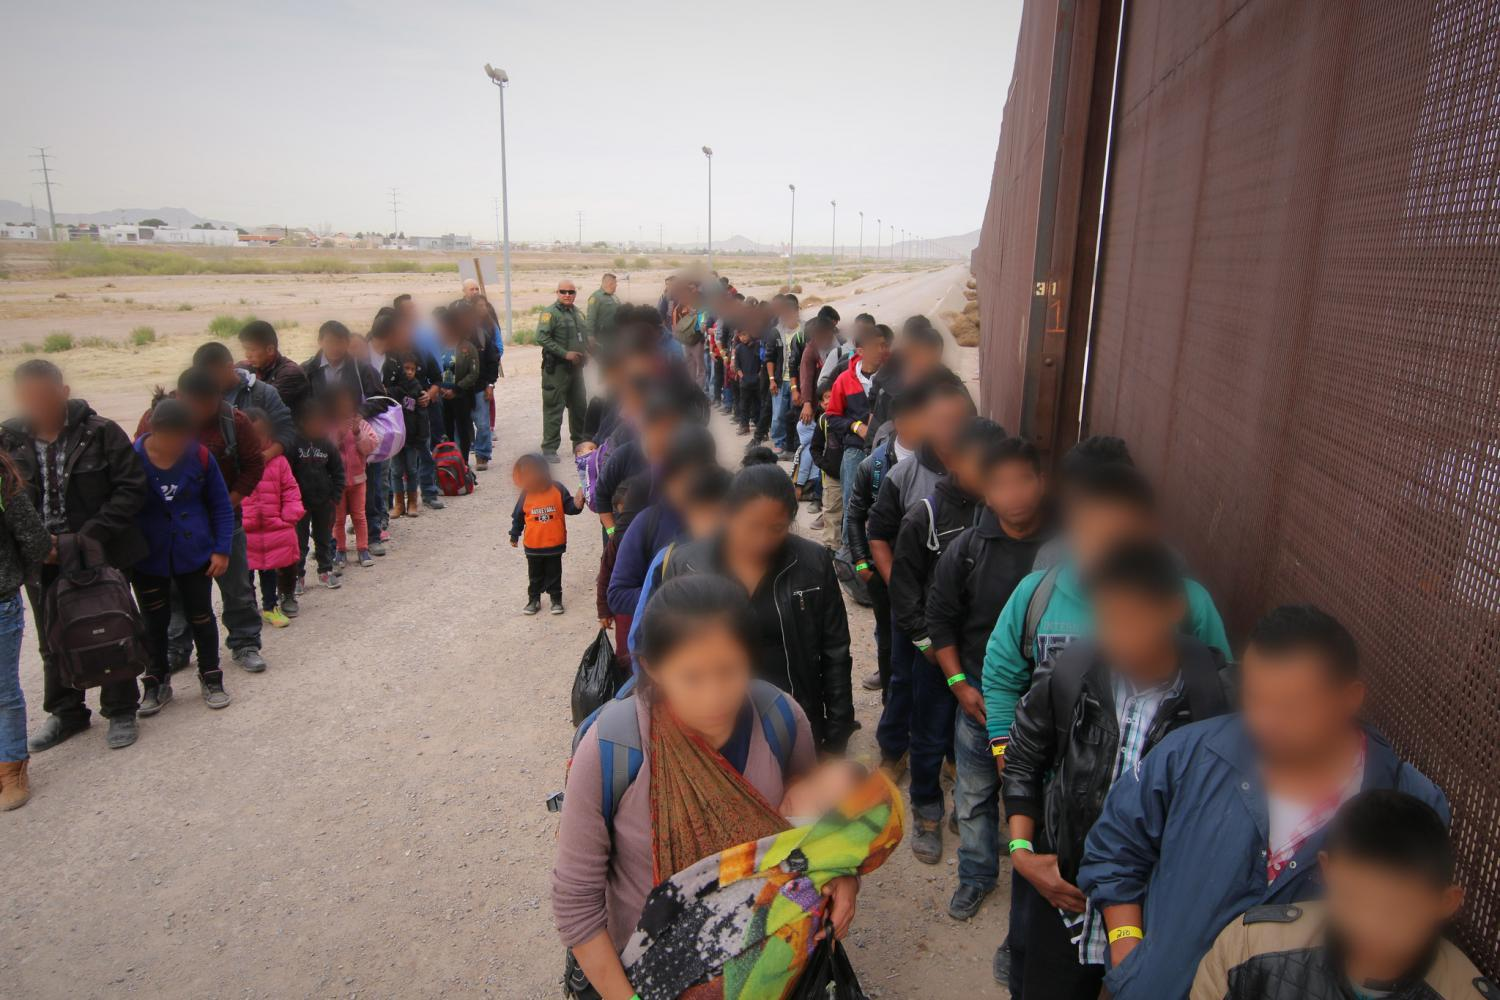 U.S. Border Patrol agents intercept a group of approximately 127 migrants